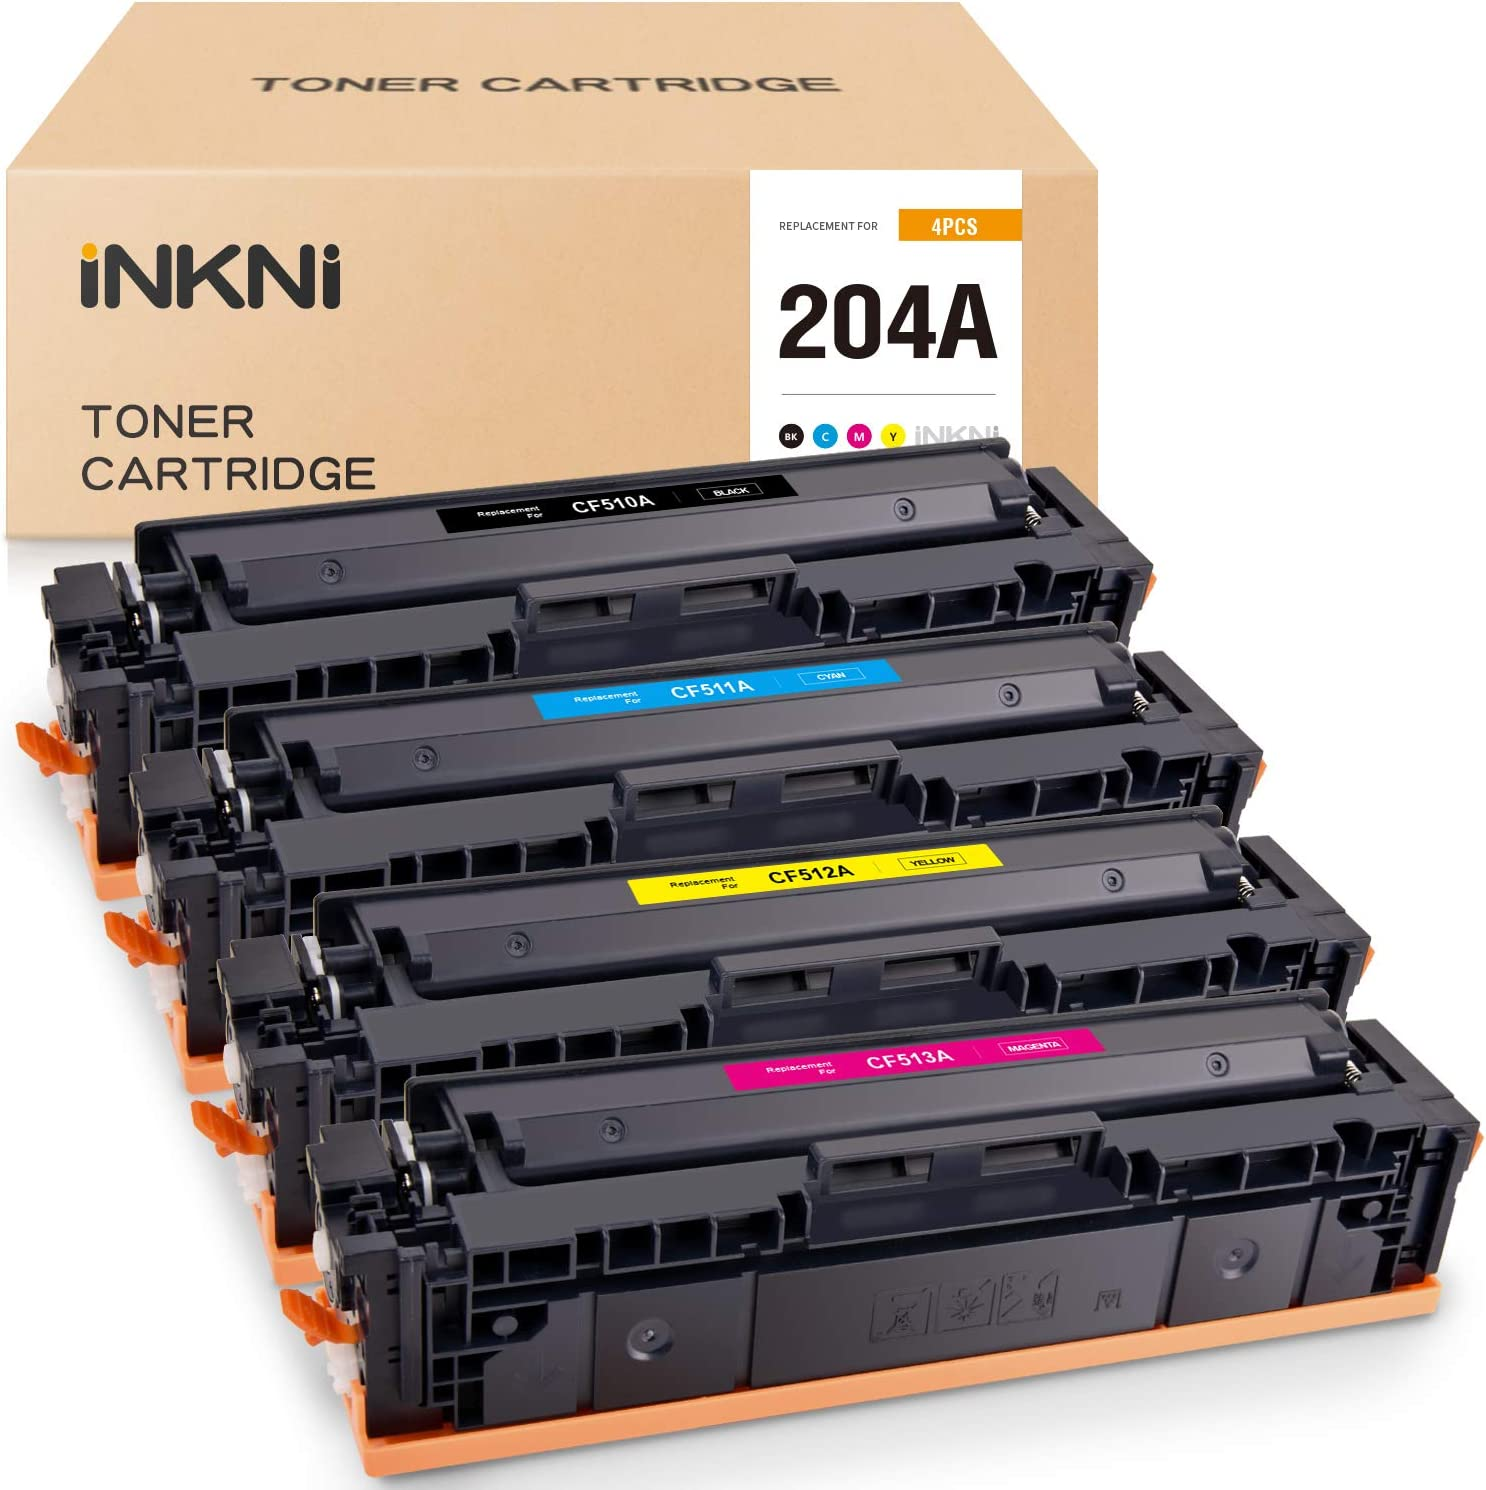 INKNI Compatible Toner Cartridge Replacement for HP 204A CF510A CF511A CF512A CF513A Used in Color Laserjet Pro MFP M180nw M180n M154a M181 M154nw M181fw M154 (Black Cyan Yellow Magenta, 4-Pack)